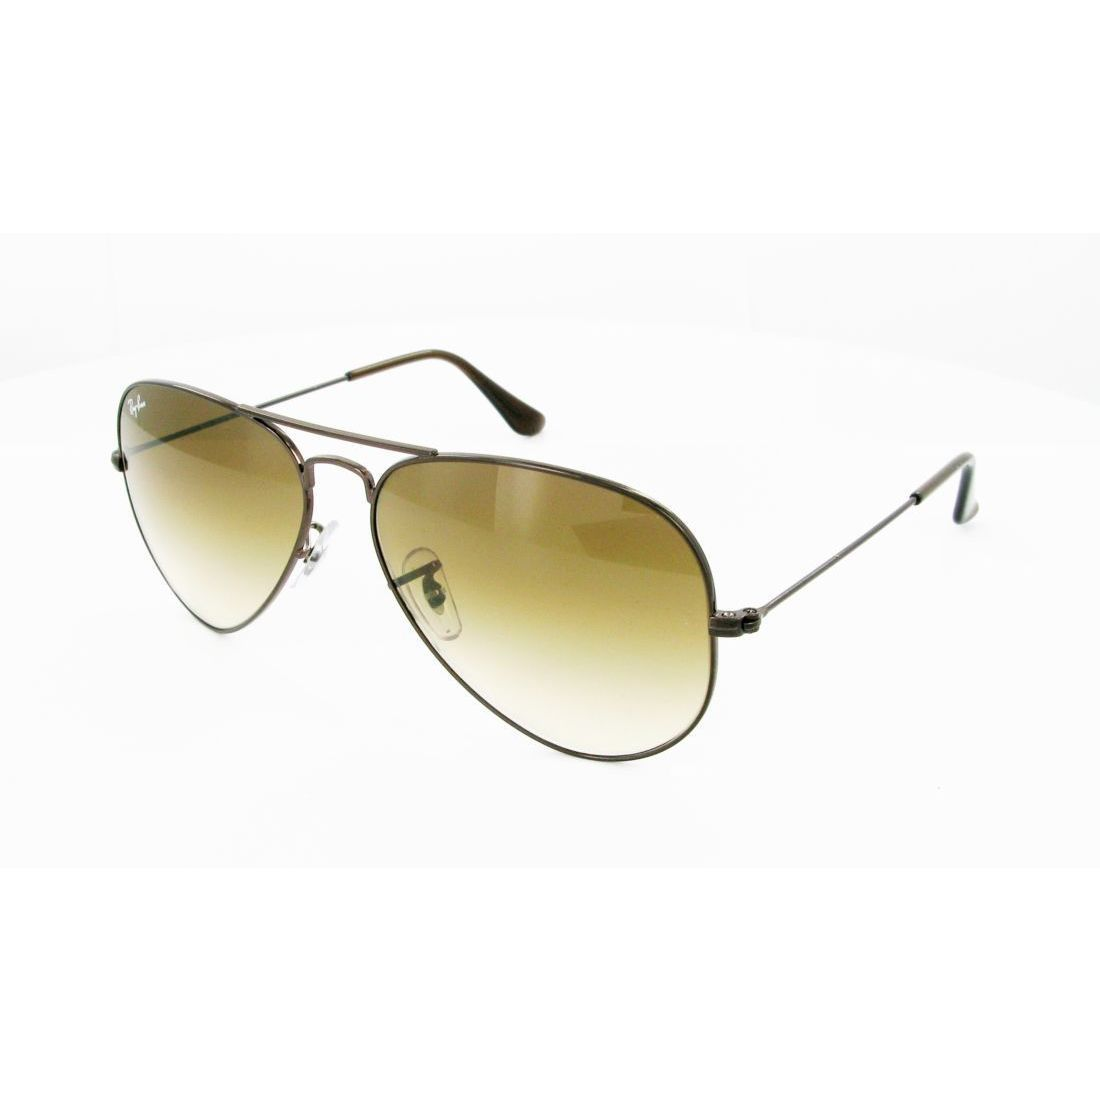 Ray-Ban  RB3025 014 51 58  Aviator Sunglasses, Men s   Products ... 29e958d27563